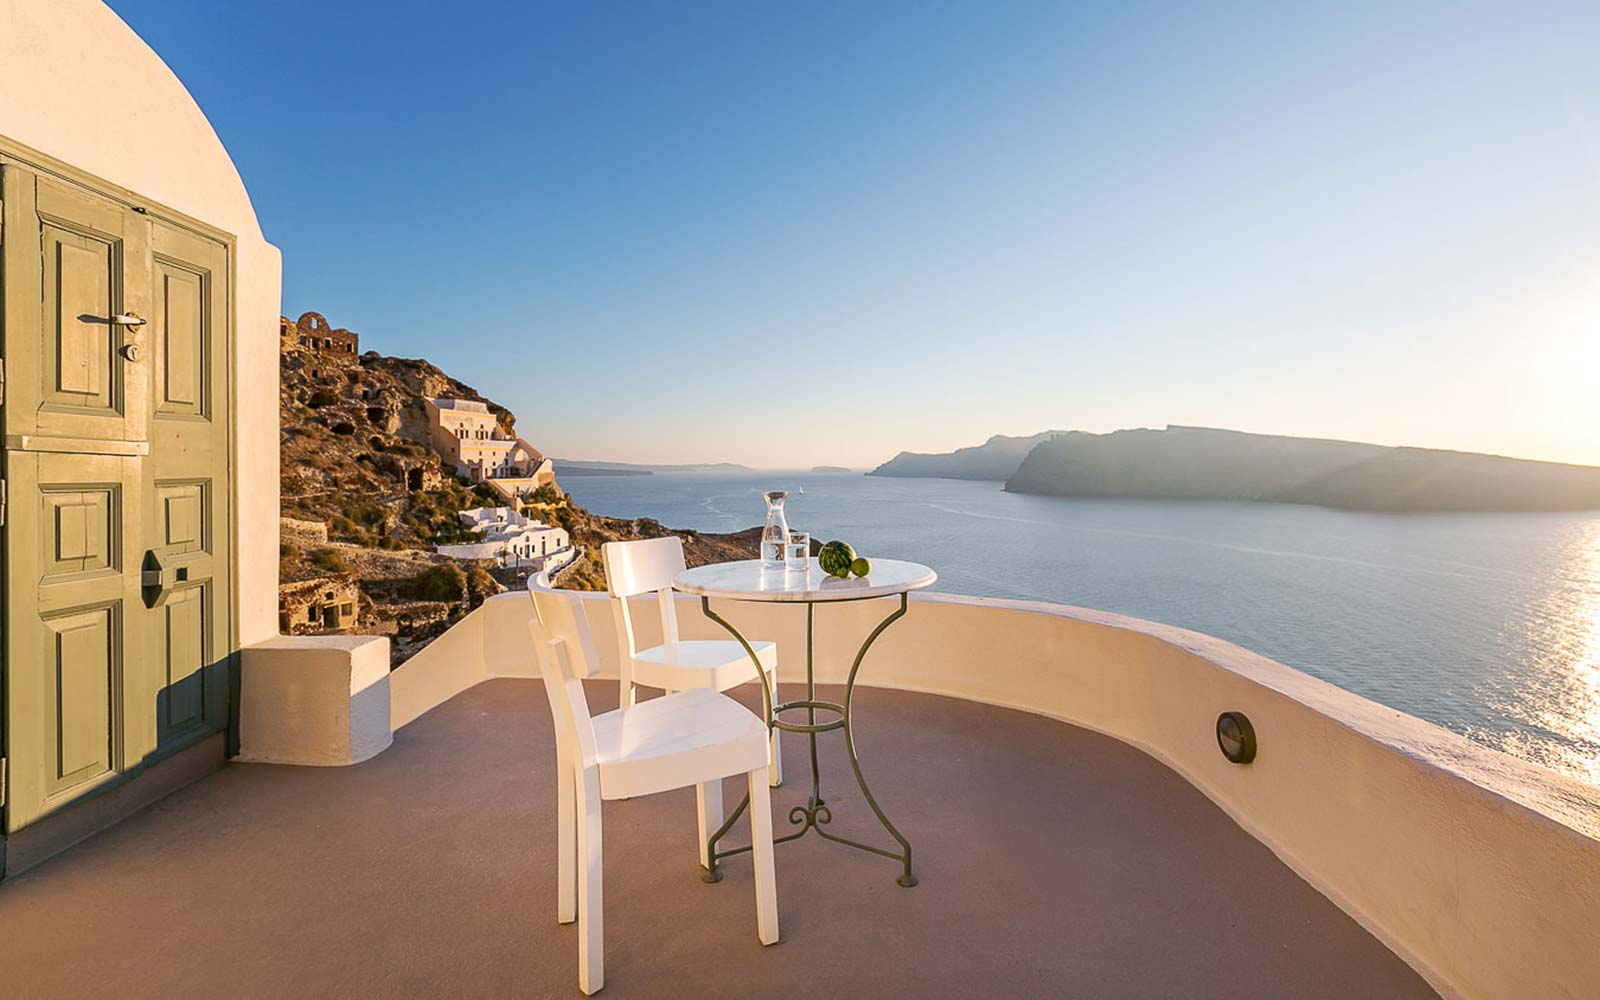 santorini oia greece airbnb rental